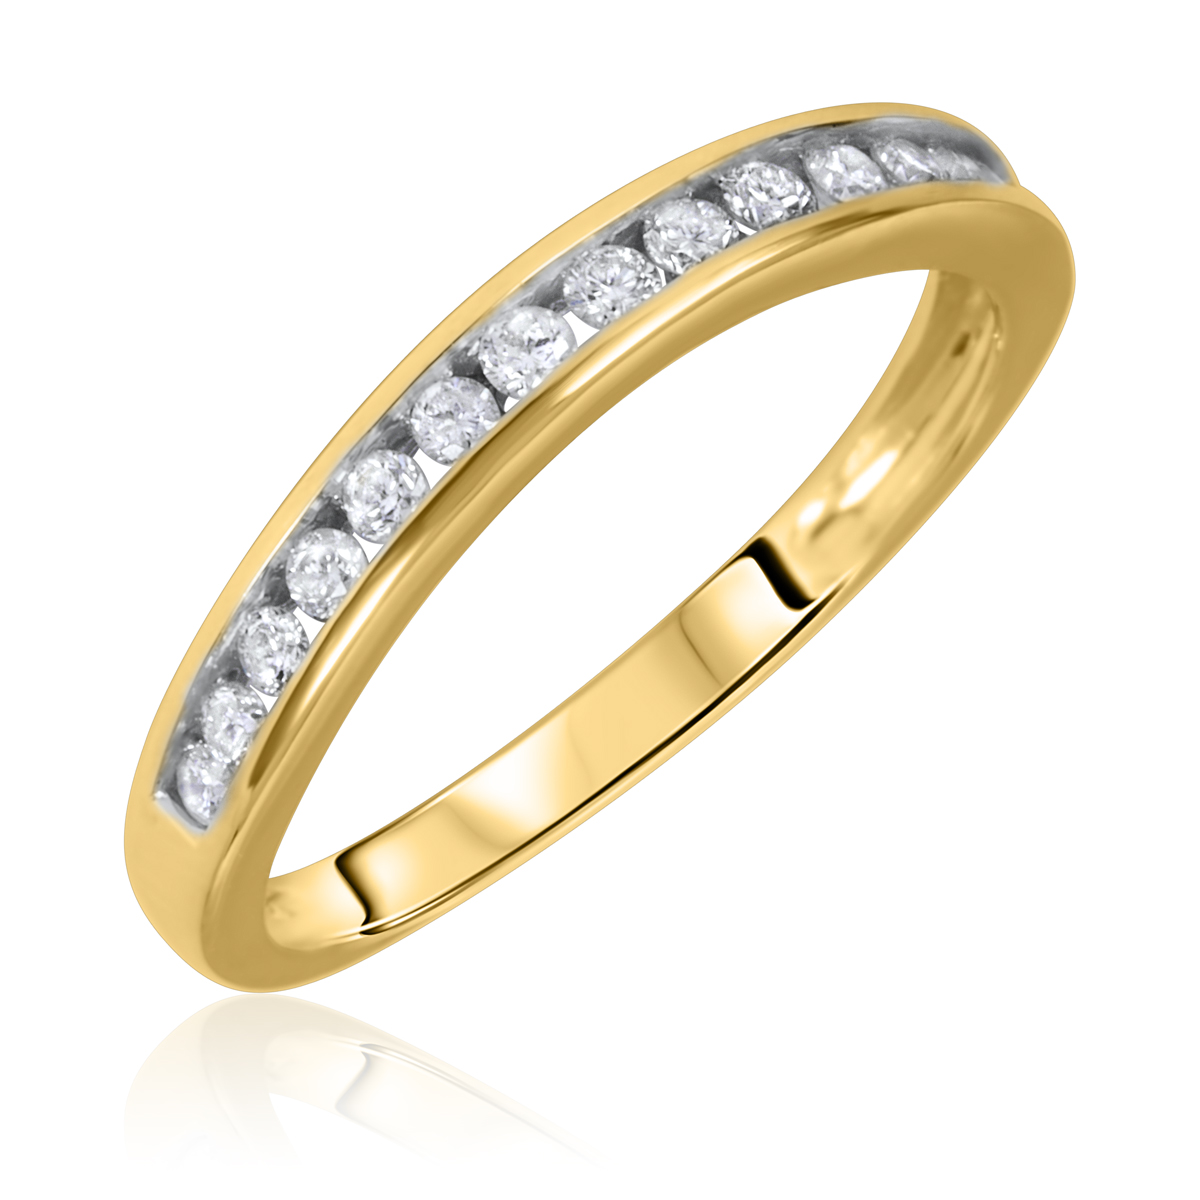 1/4 Carat T.W. Round Cut Diamond Ladies Wedding Band 10K Yellow Gold- Size 8